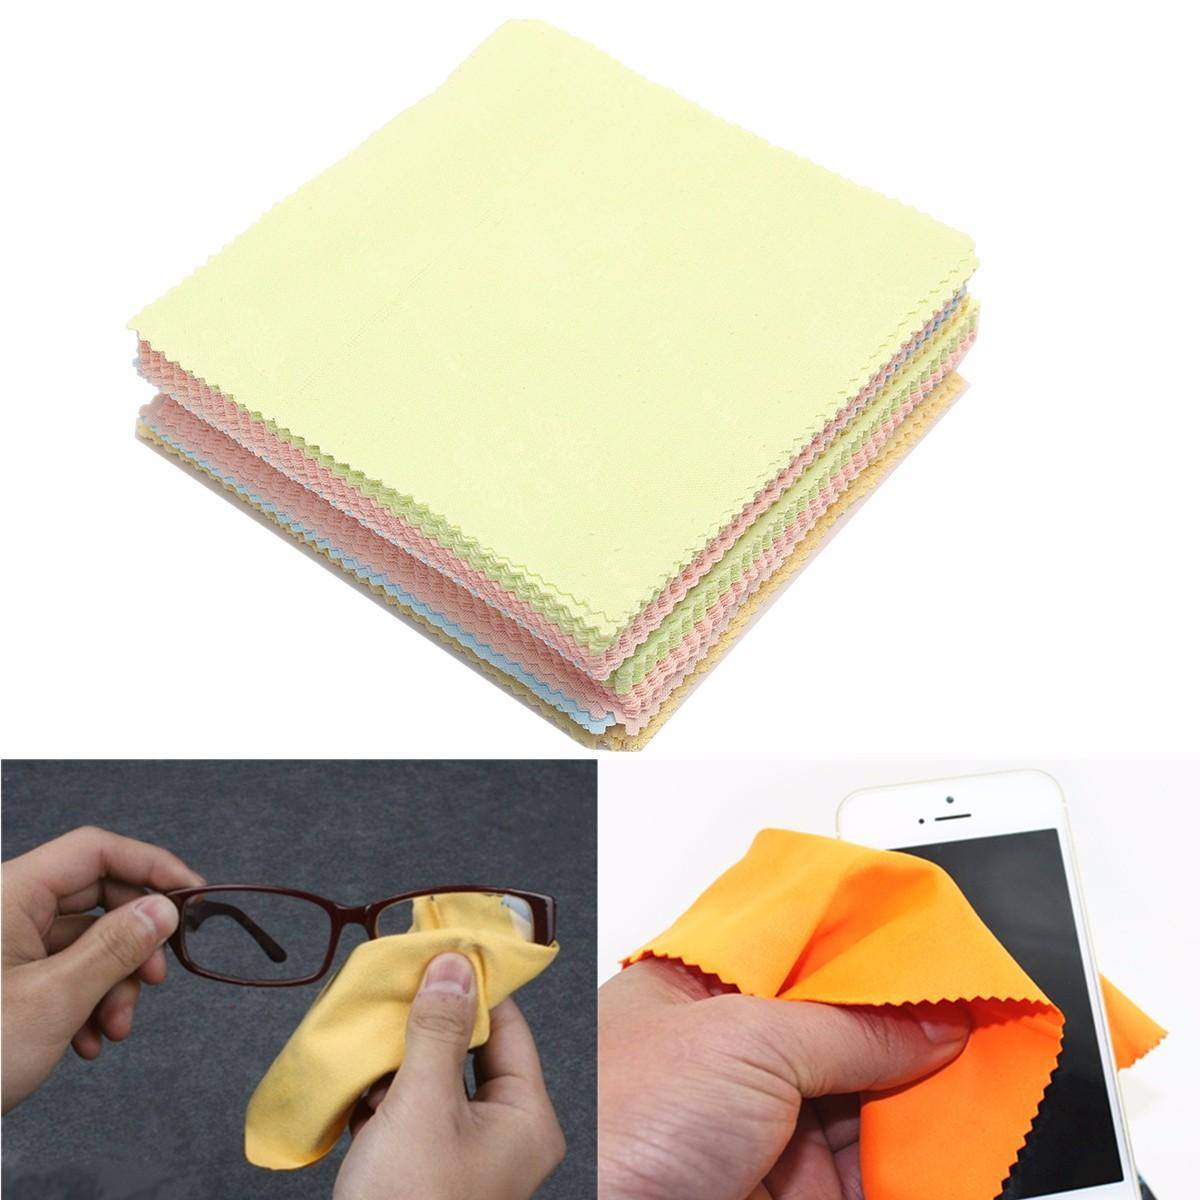 80Pcs Mixed Color Wipe Fiber Cleaning Cloth Polishing Eyeglasses Camera Phone Computer Screen Stains from Banggood